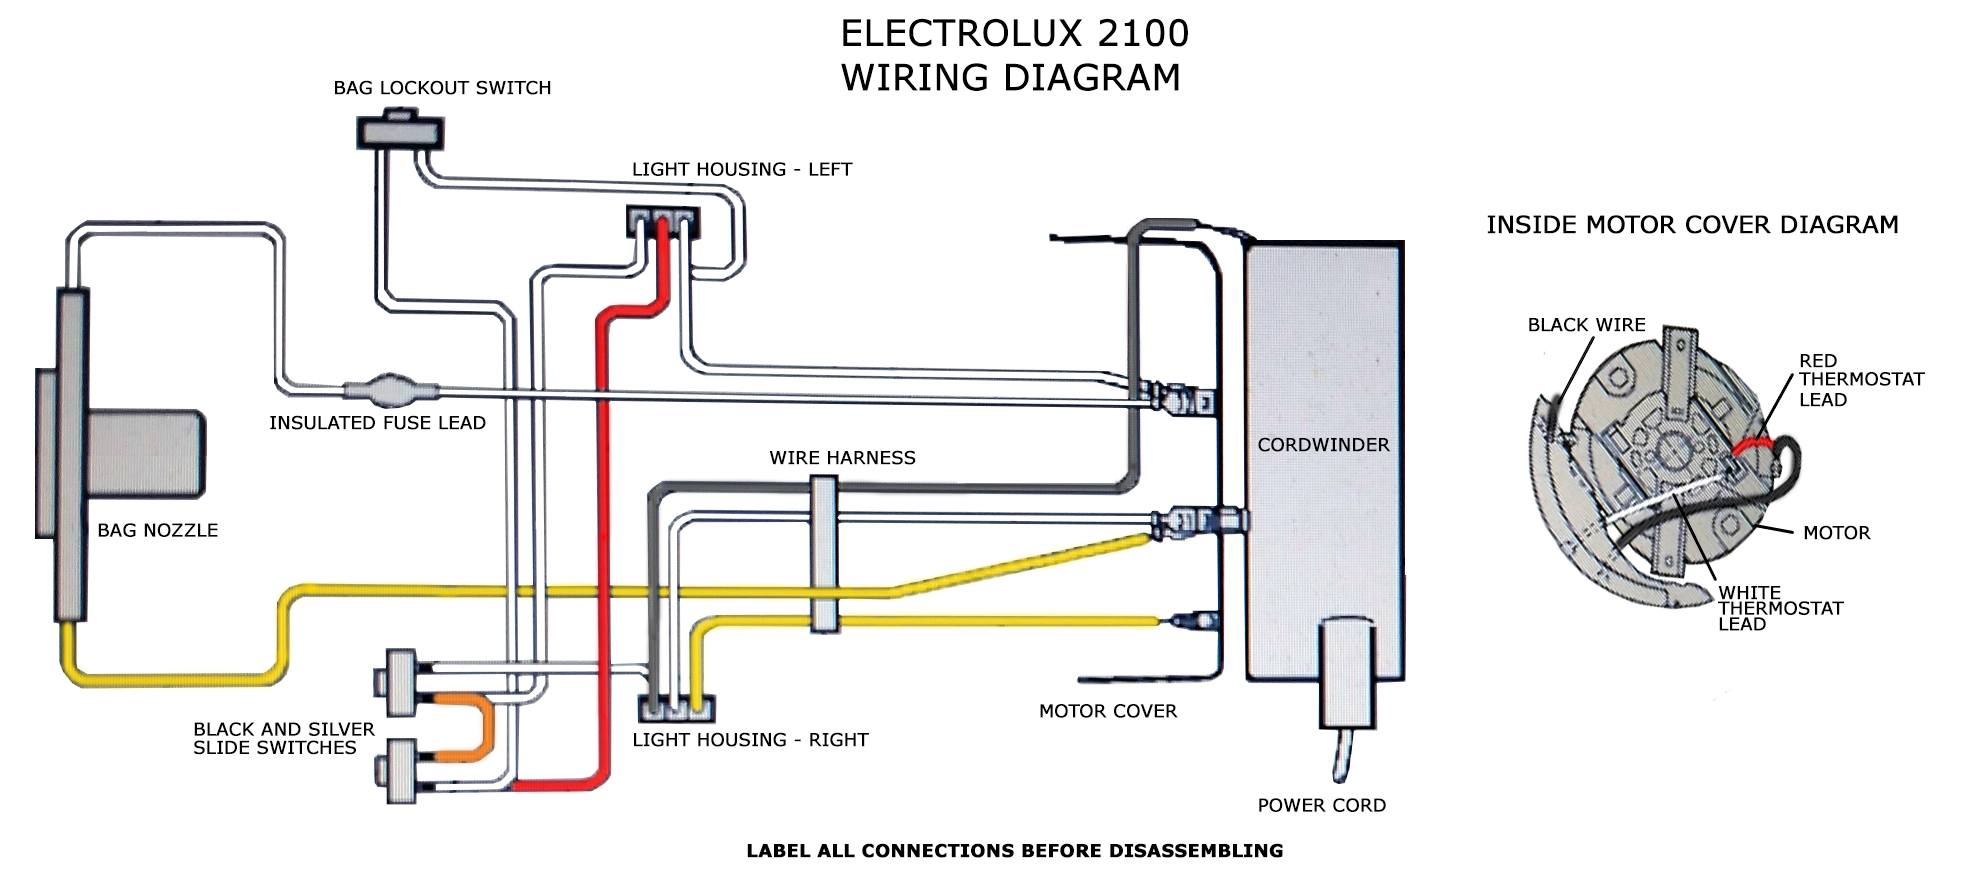 2100 wiring diagram miele vacuum wiring diagram osram wiring diagram \u2022 wiring diagram geyser wiring diagram at bakdesigns.co